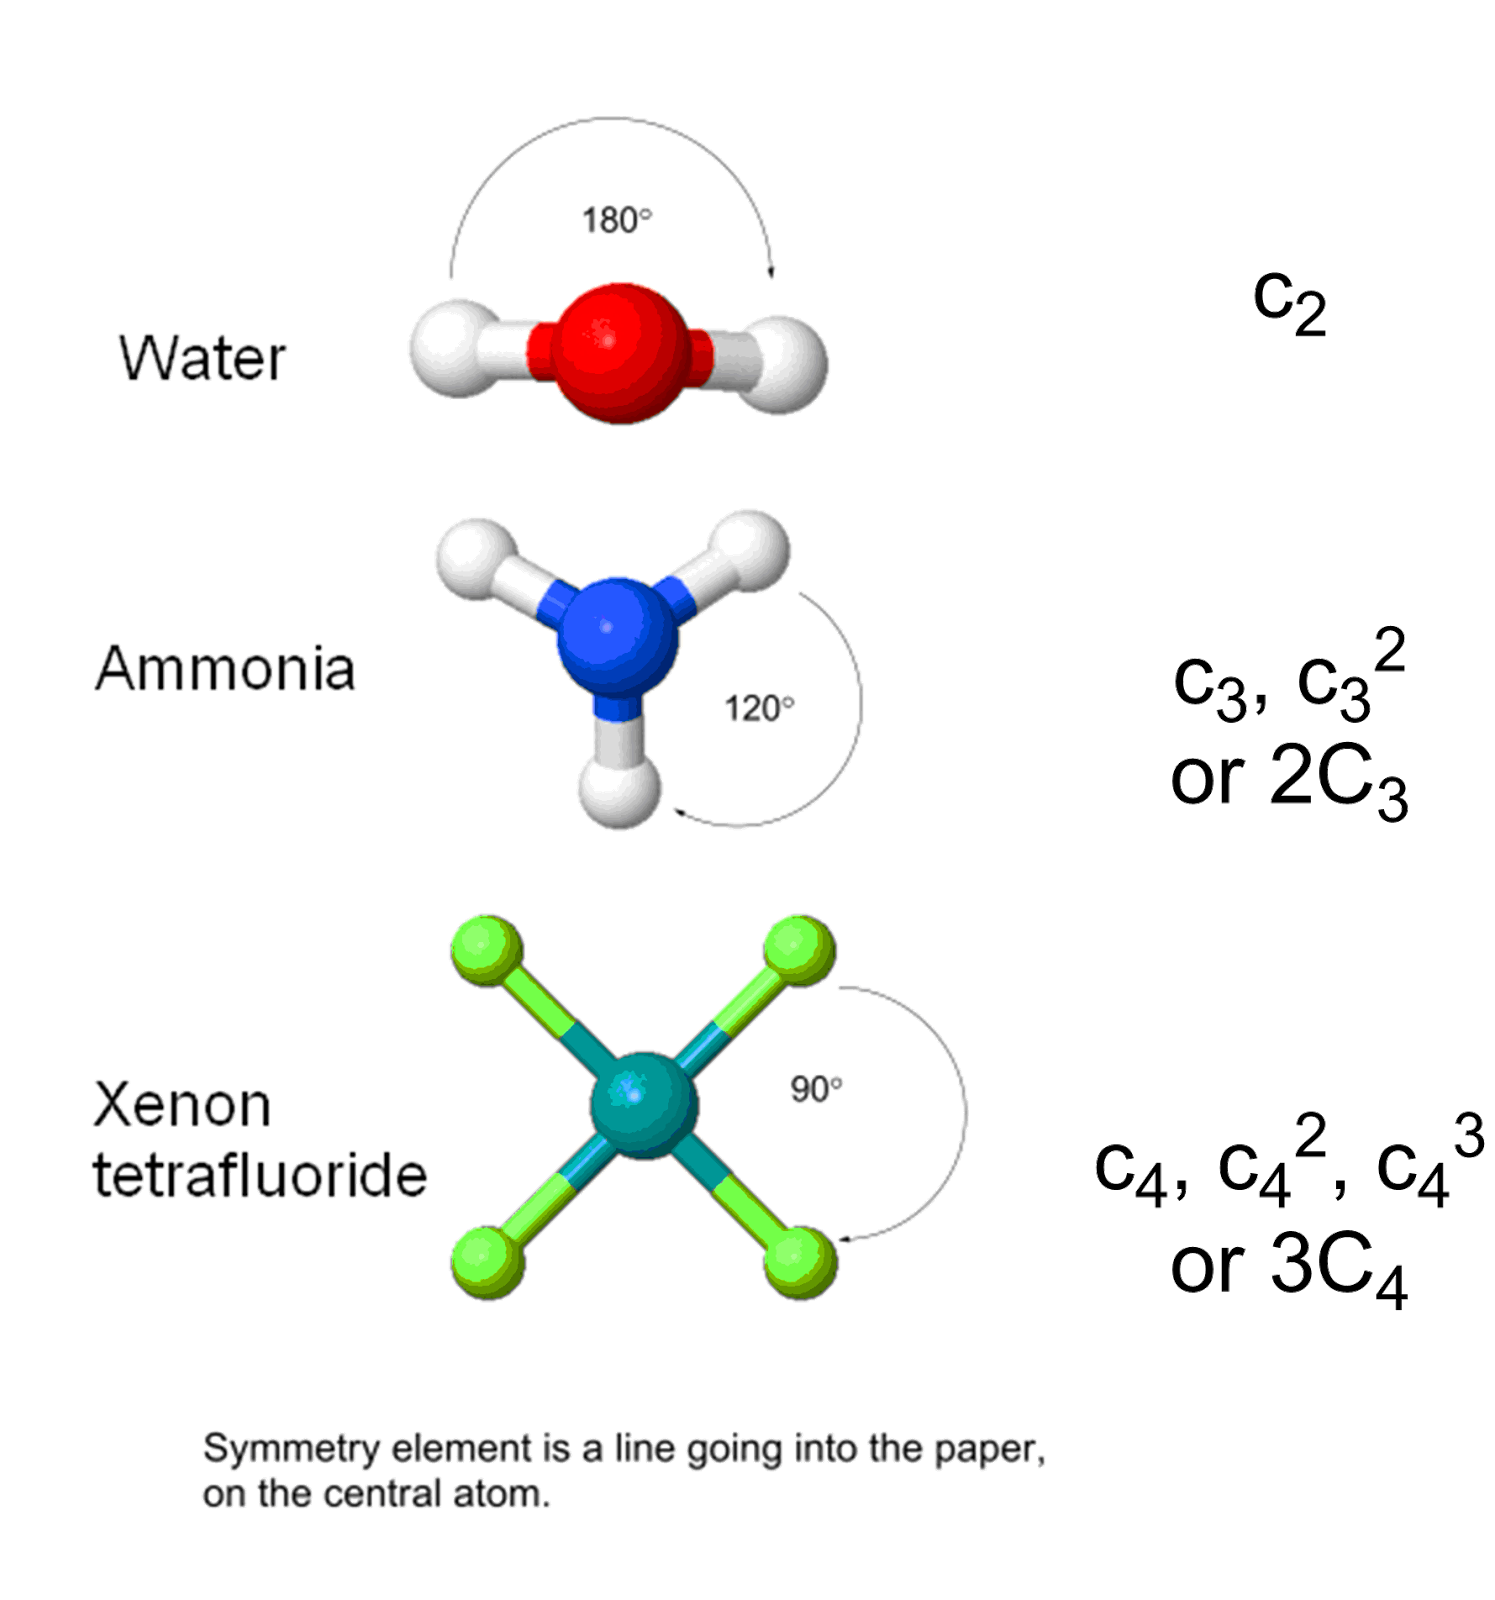 Chemistry guide to symmetry rotation by 360 n degrees so you can find n by dividing 360 by the angle the structure must be rotated easiest way to understand it is by diagrams pooptronica